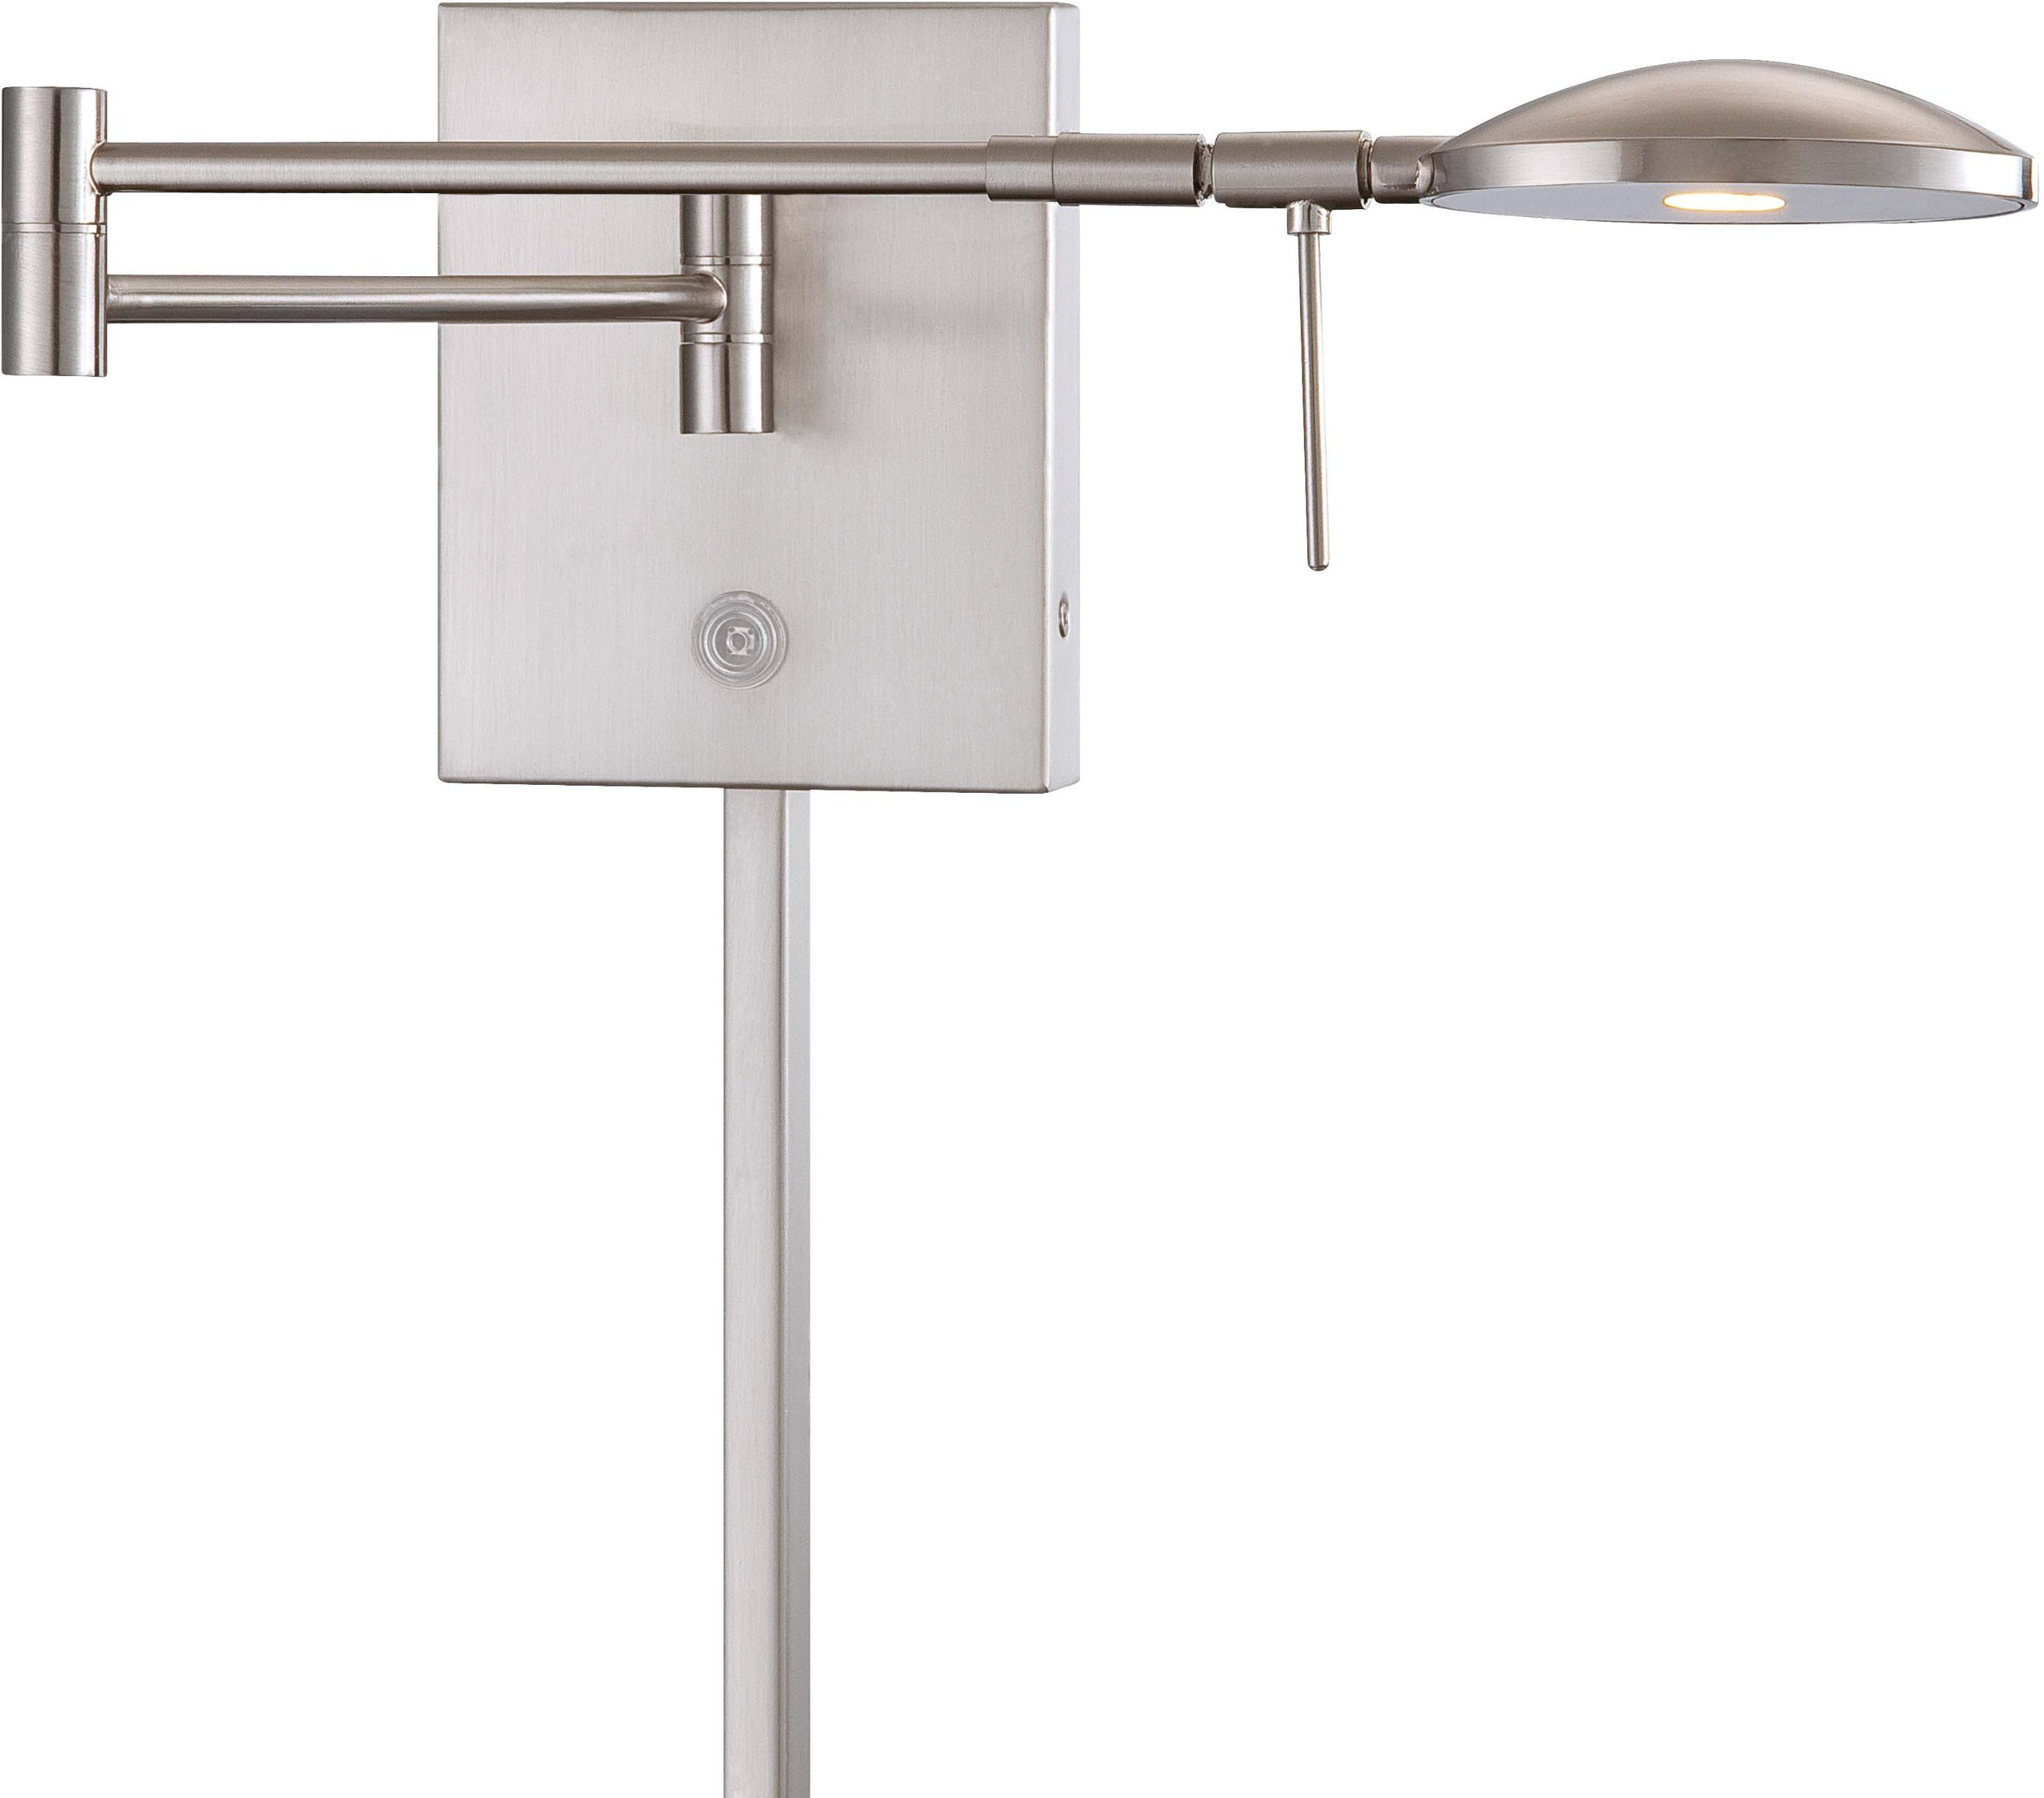 George Kovacs P4338-084, Georges Reading Room, 1 Light LED Swing Arm Wall Lamp, Brushed Nickel by Kovacs